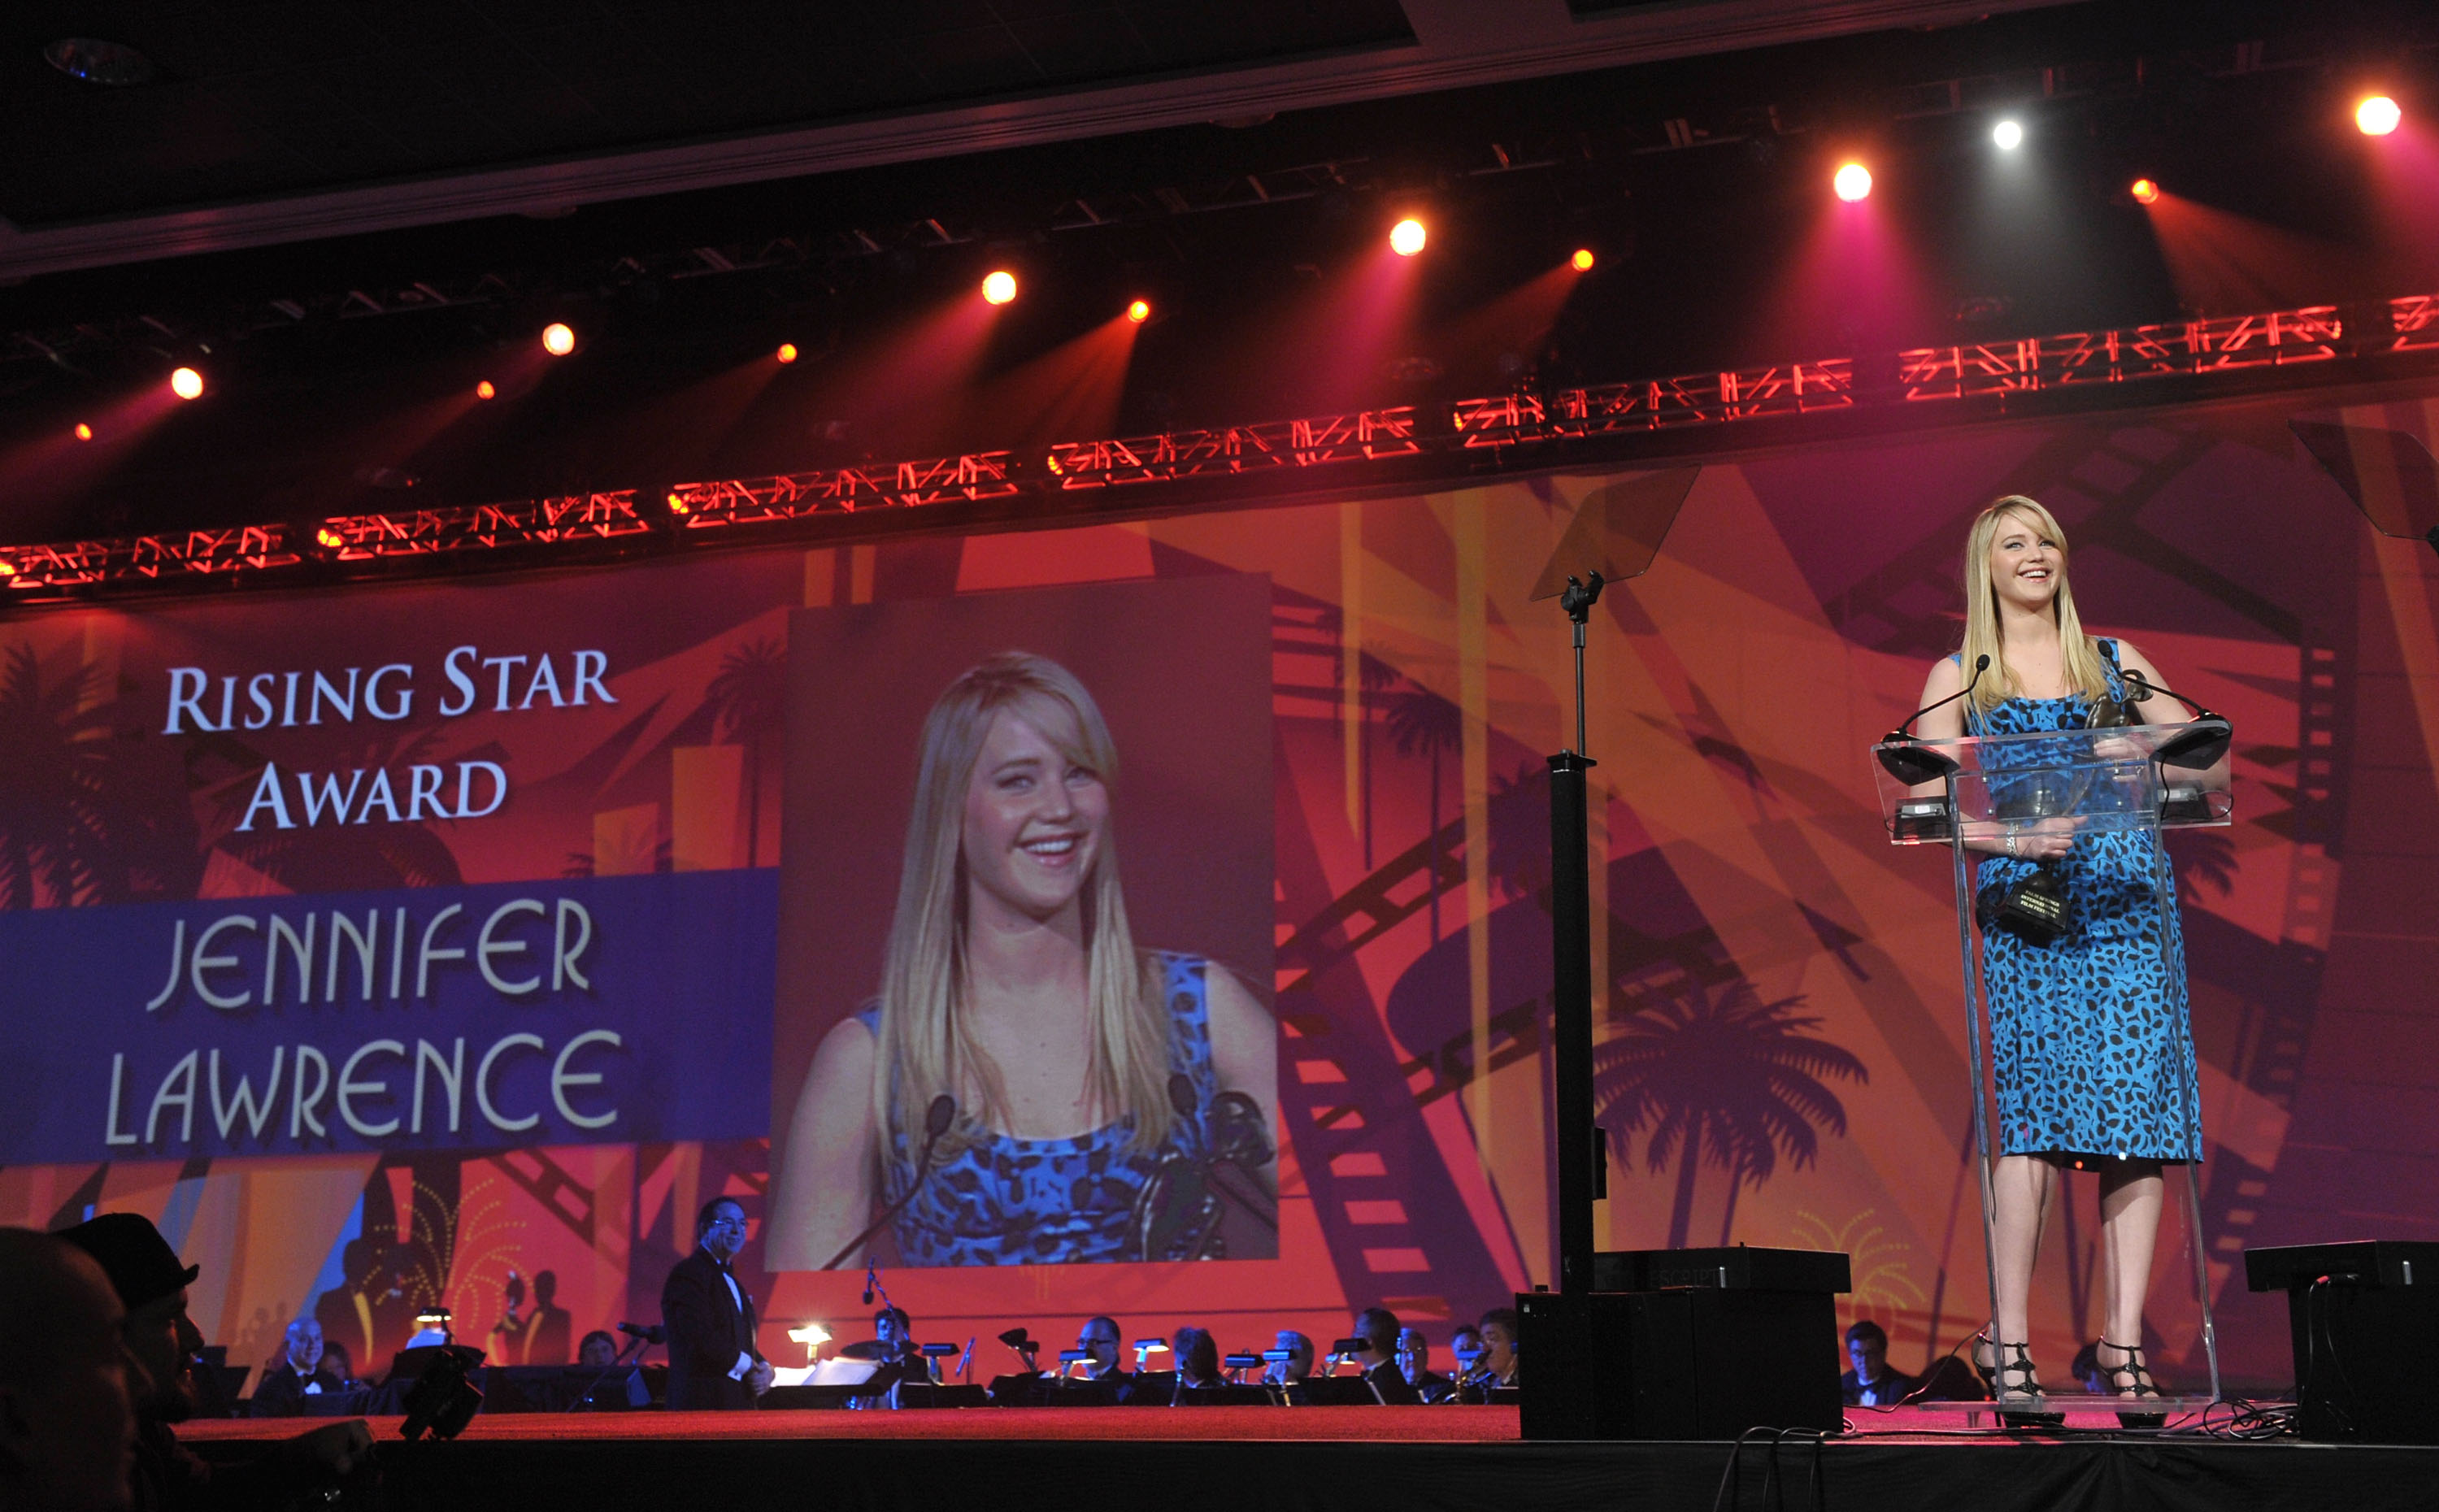 Jennifer Lawrence accepts the Rising Star Award during the 22nd Annual Palm Springs International Film Festival Awards on Jan. 8, 2011 in Palm Springs, Calif.